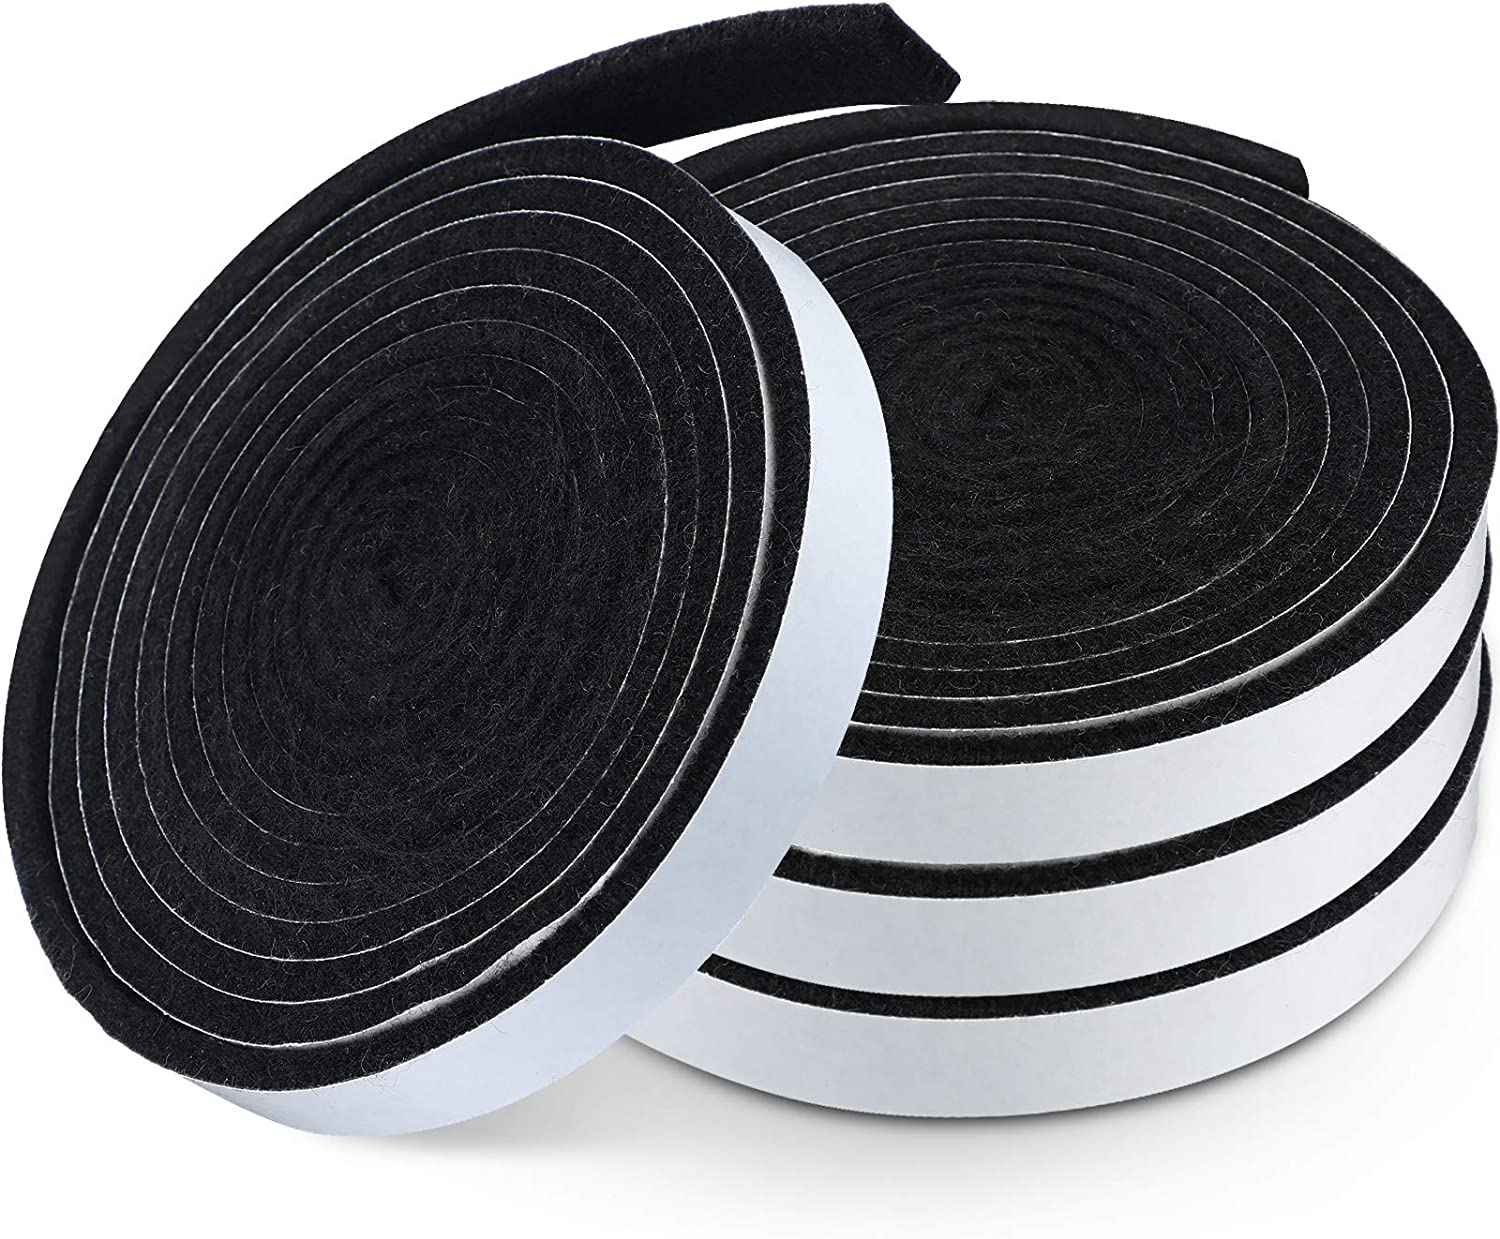 BBQ Gasket Black Smoker Grill Tape High Temp Grill Seal Self Stick Gasket, 7.5 Ft Length 1/8 Inch Thickness (4, 0.5 Inch Wide)